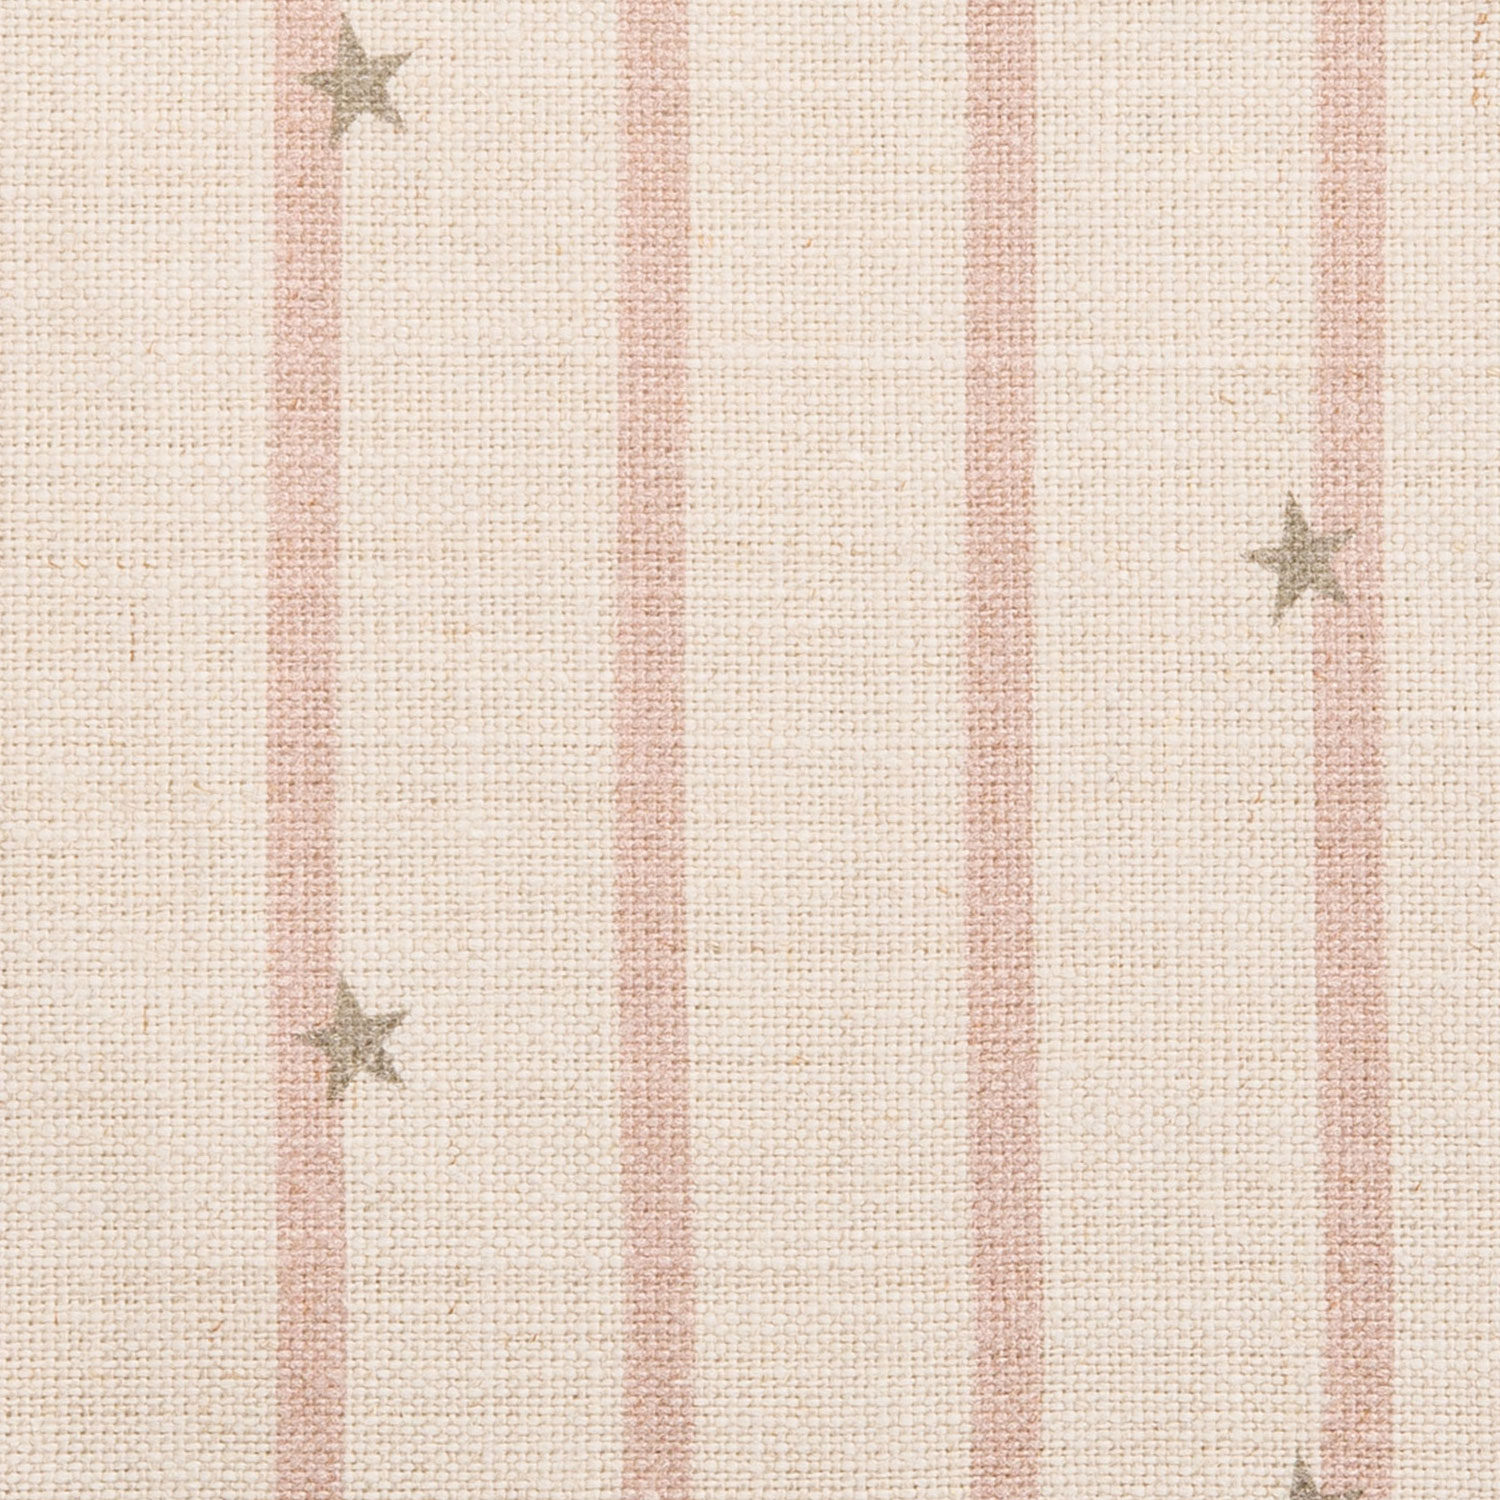 Stars & Stripes, Mulberry Pink & Grey